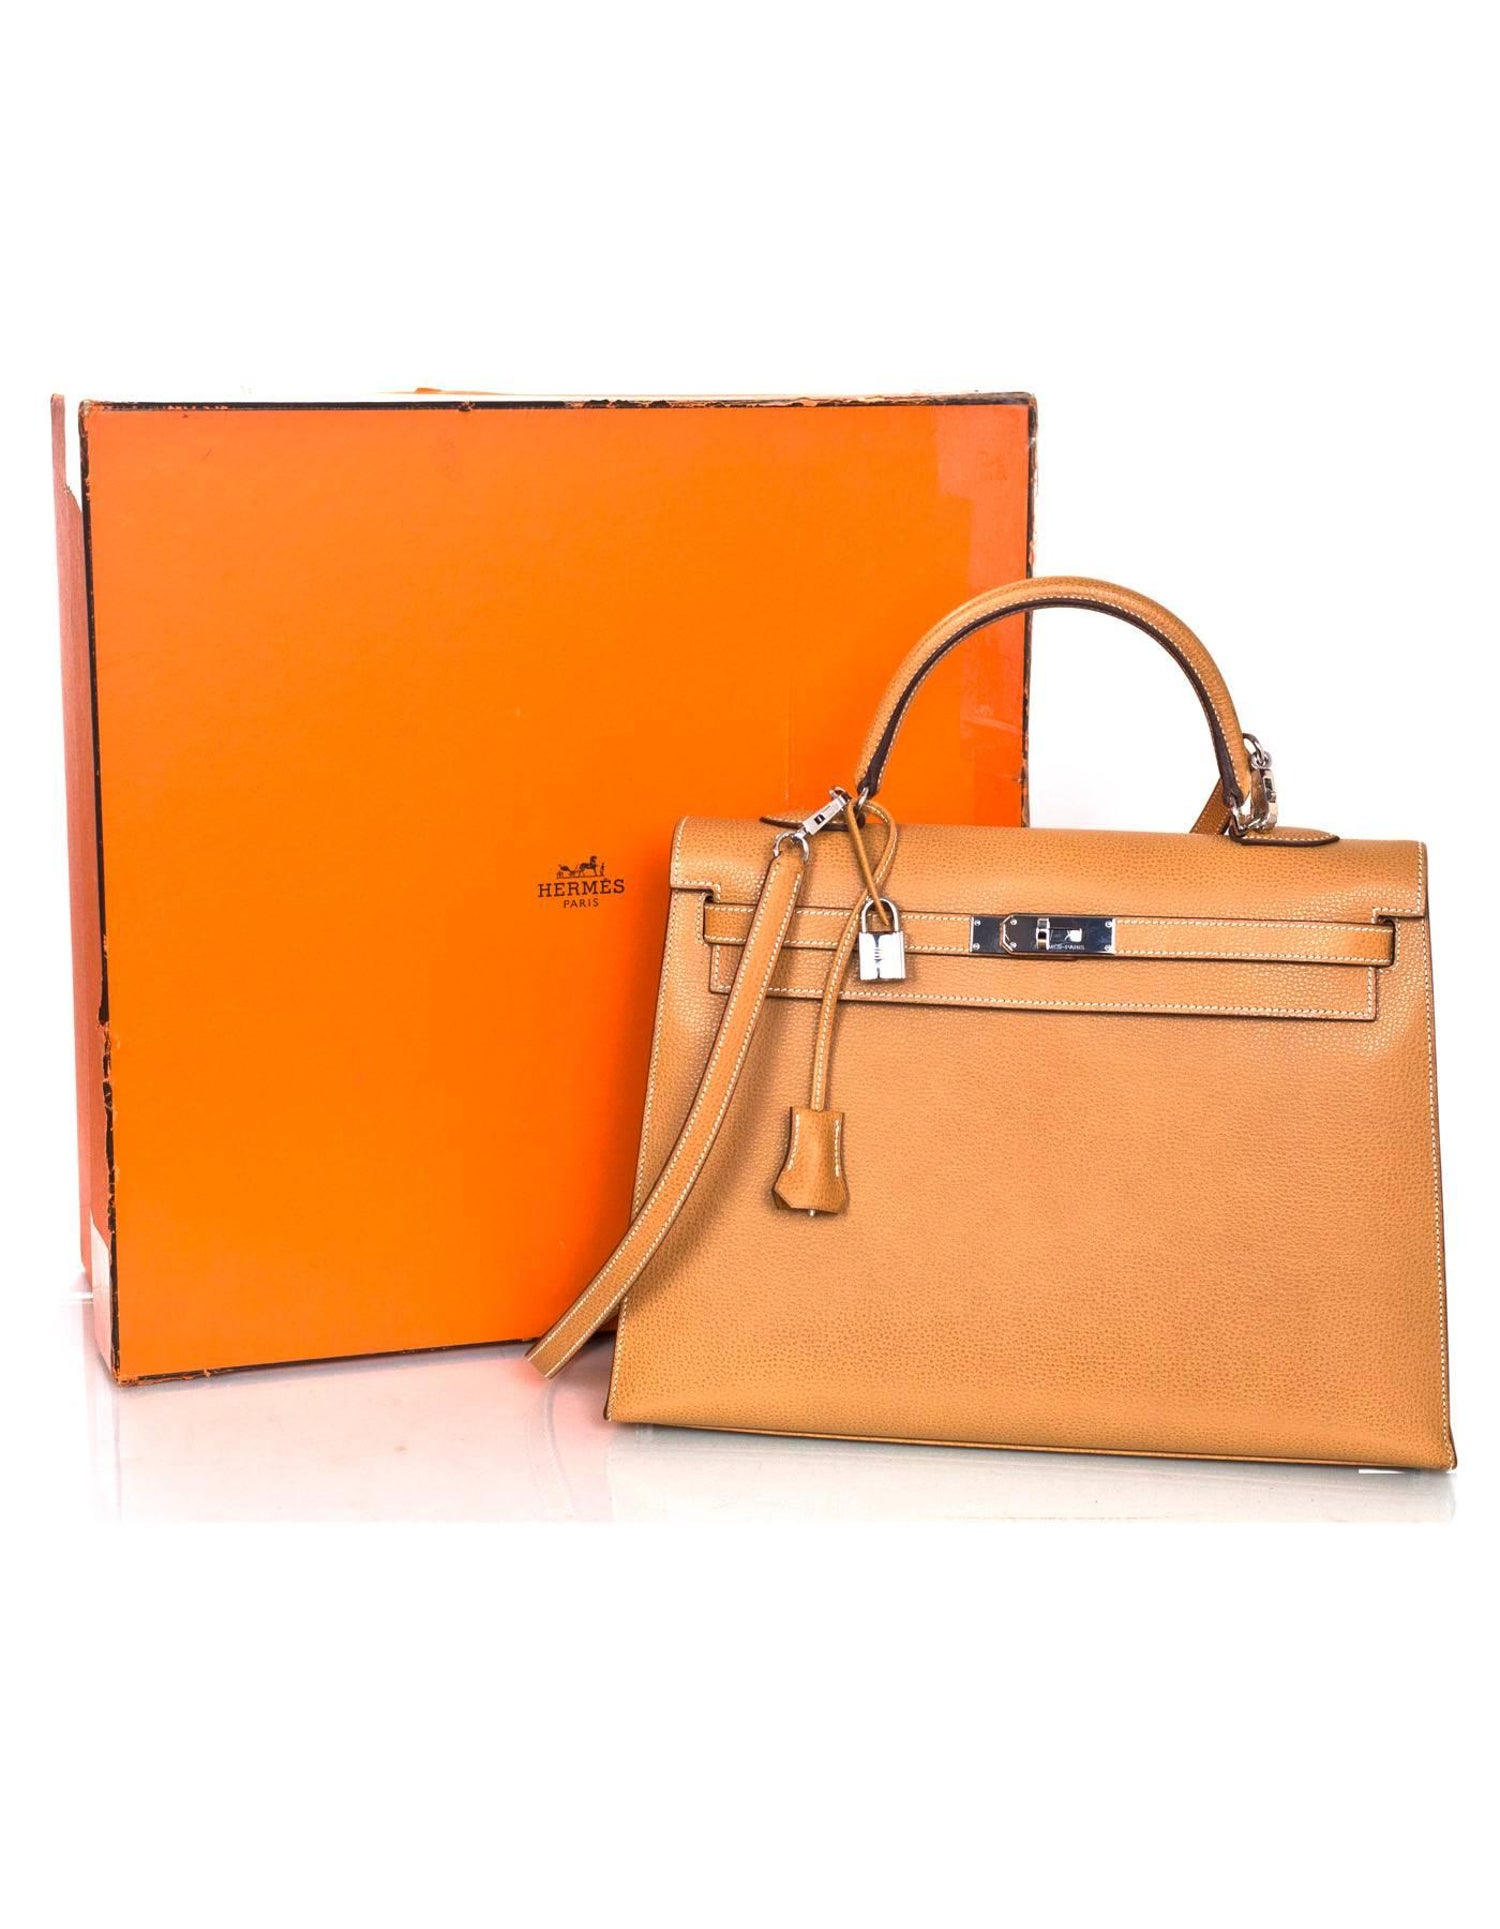 cd10f125245a Hermes Camel Textured Leather Sellier Rigid 35cm Kelly Bag w  Strap For  Sale at 1stdibs